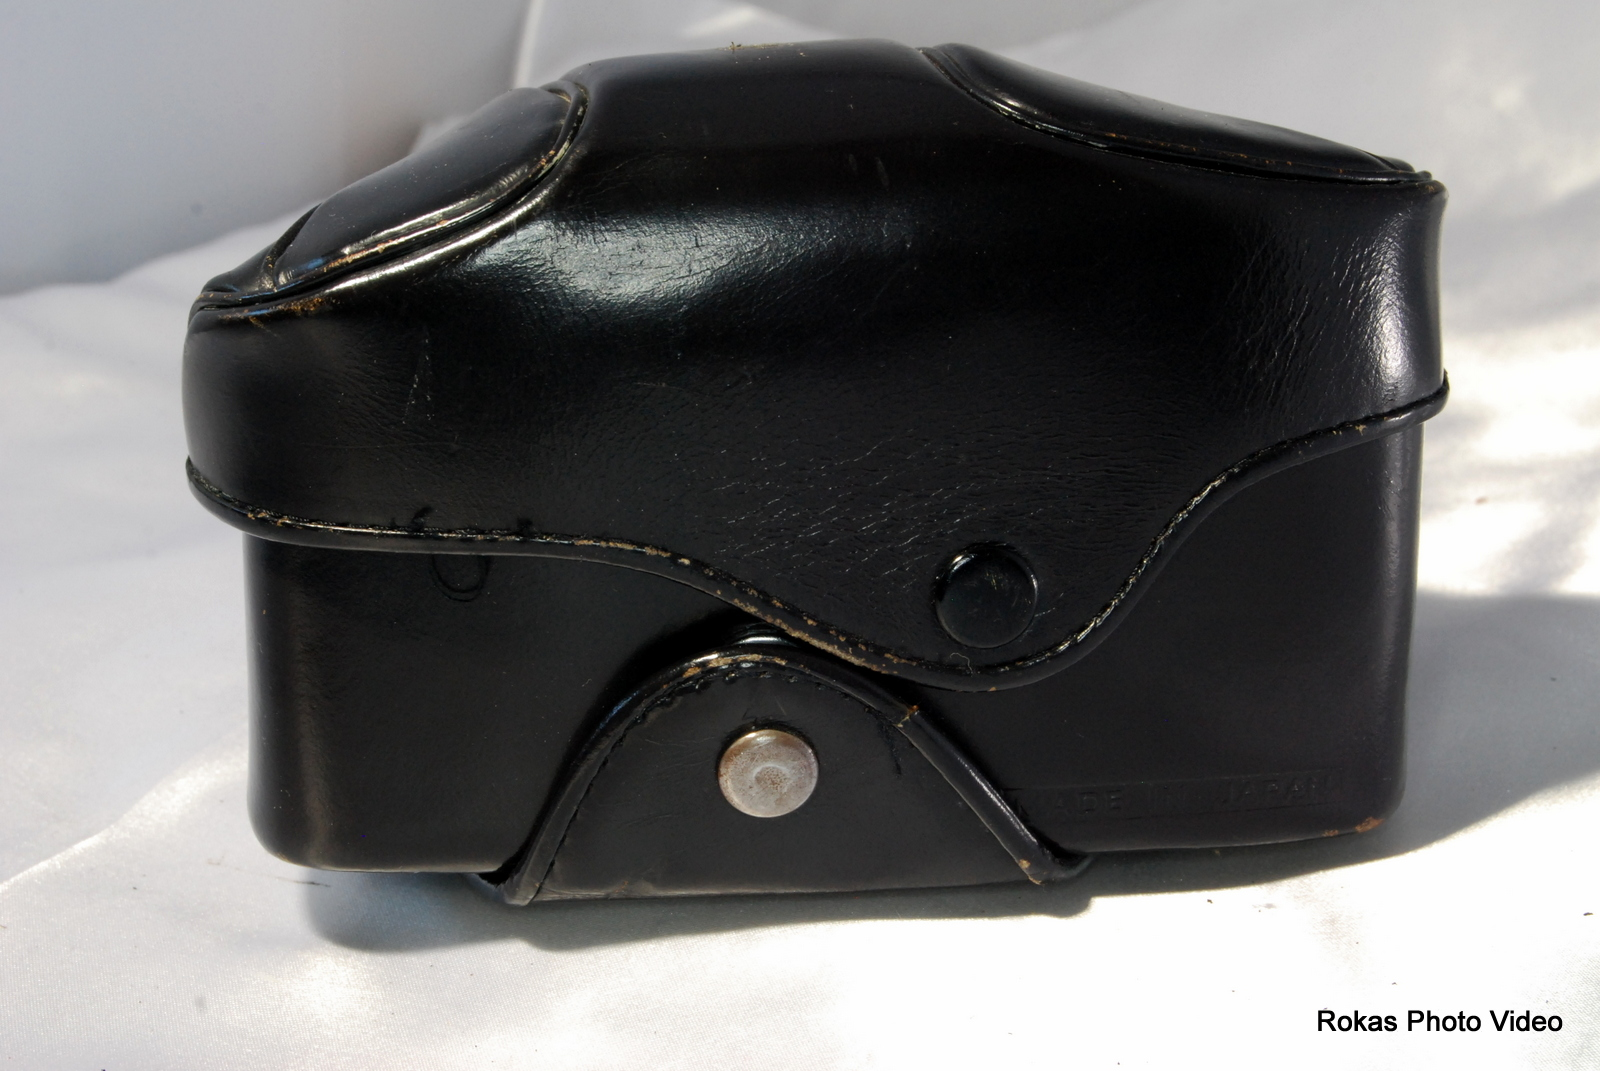 minolta camera case Camera leather - we offer high quality covering alternatives for your vintage  in most cases, we offer discounts for services on cameras we don't have listed.